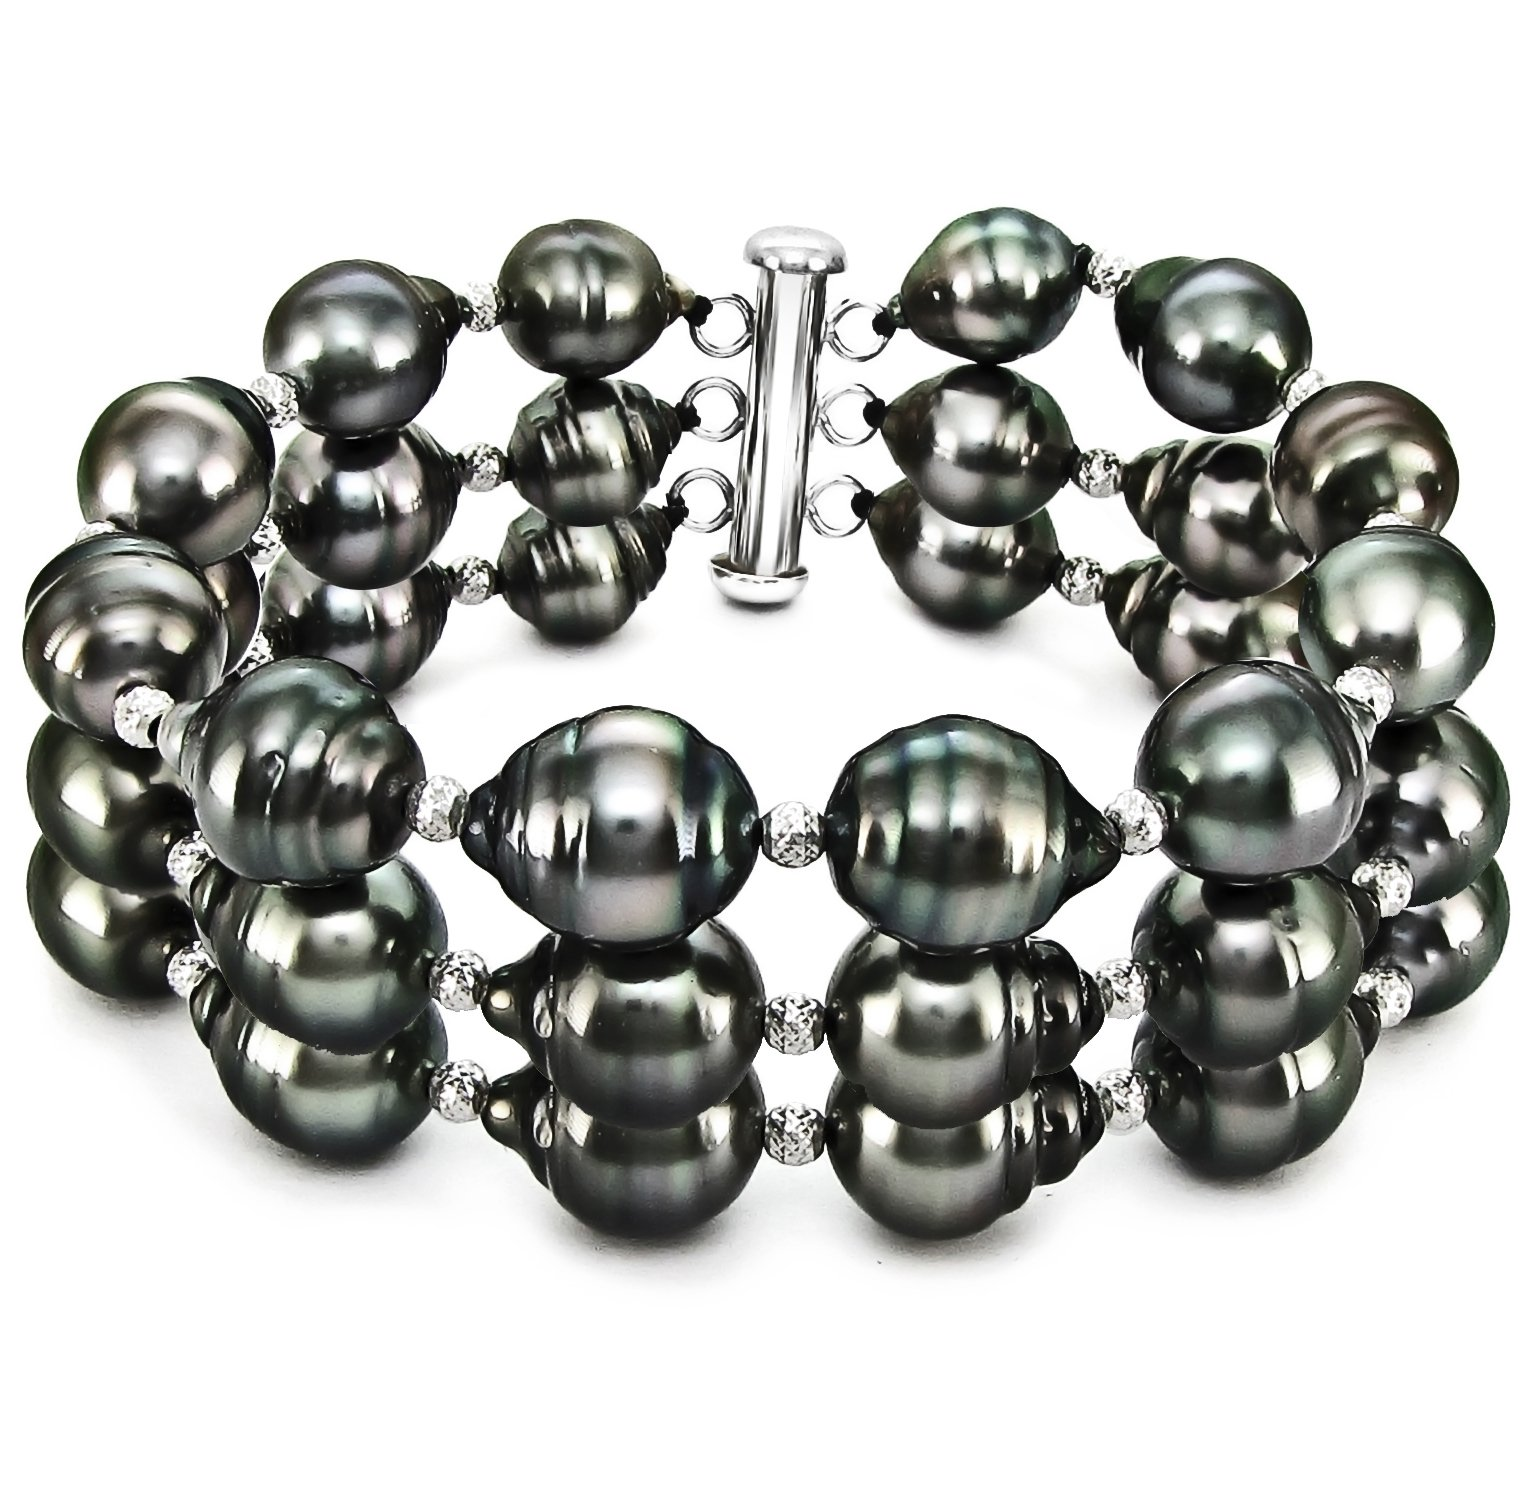 Sterling Silver 3-Rows 8-10mm Black Off-shape Tahitian Cultured Pearl Bracelet with Sparkling Beads, 7.5''